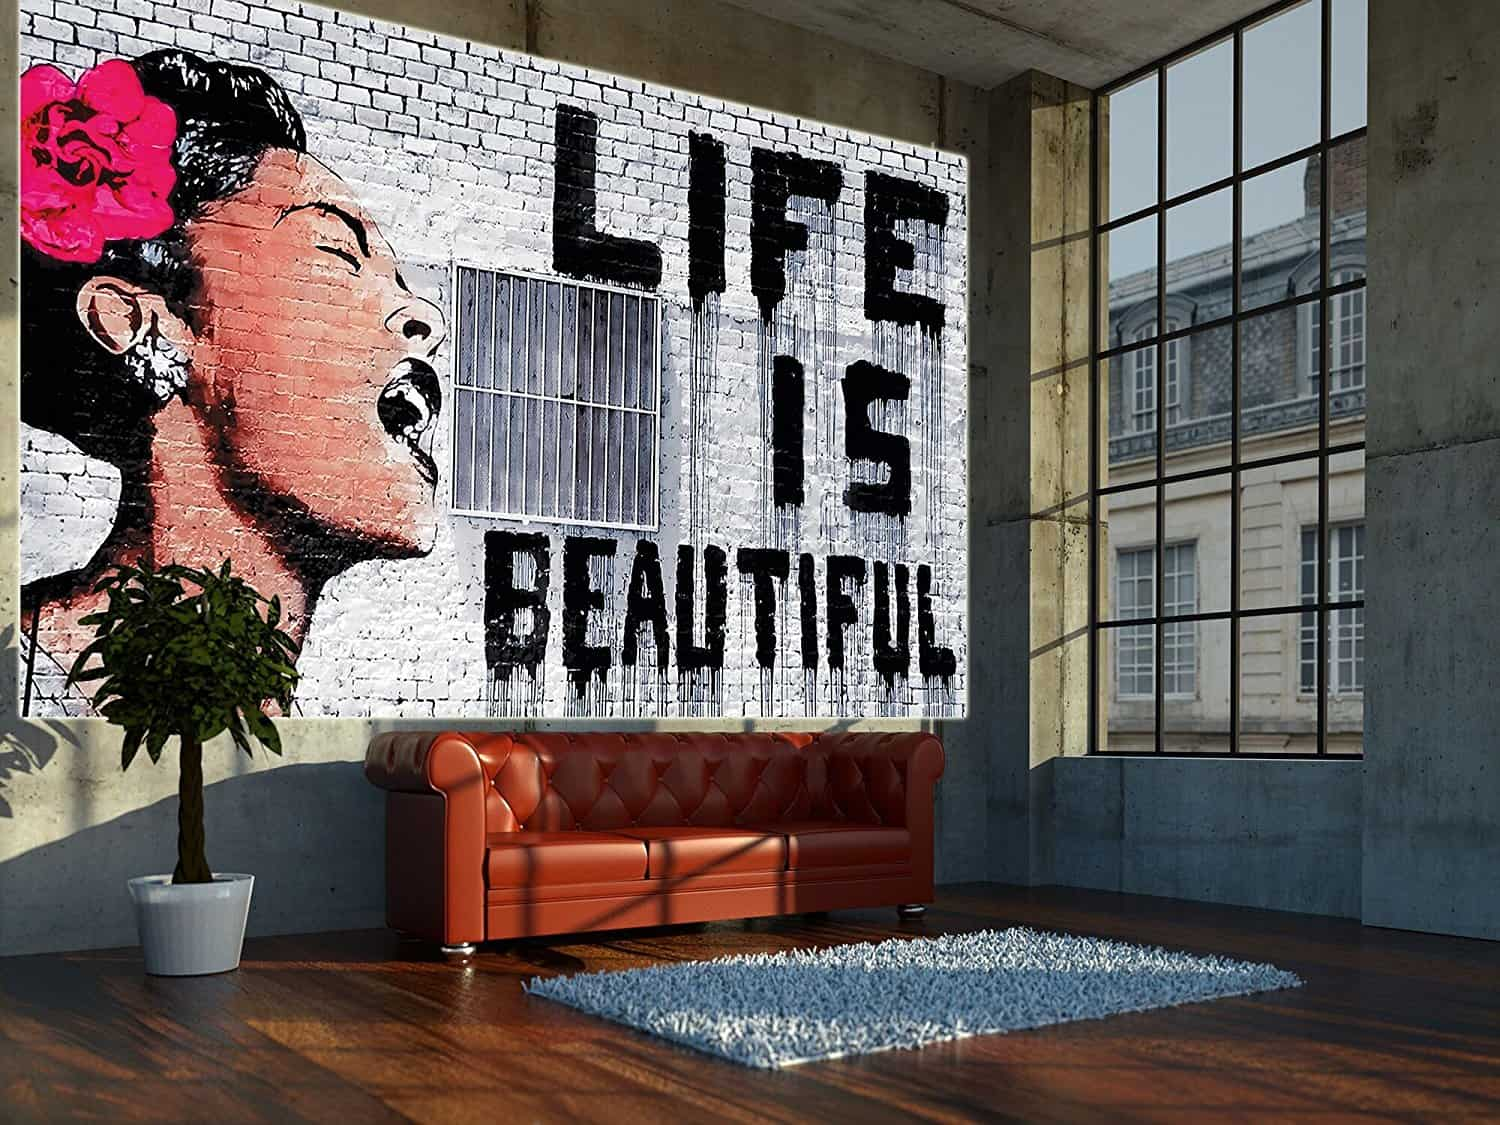 send a message 10 Stunning Ways To Bring Street Art To The Home